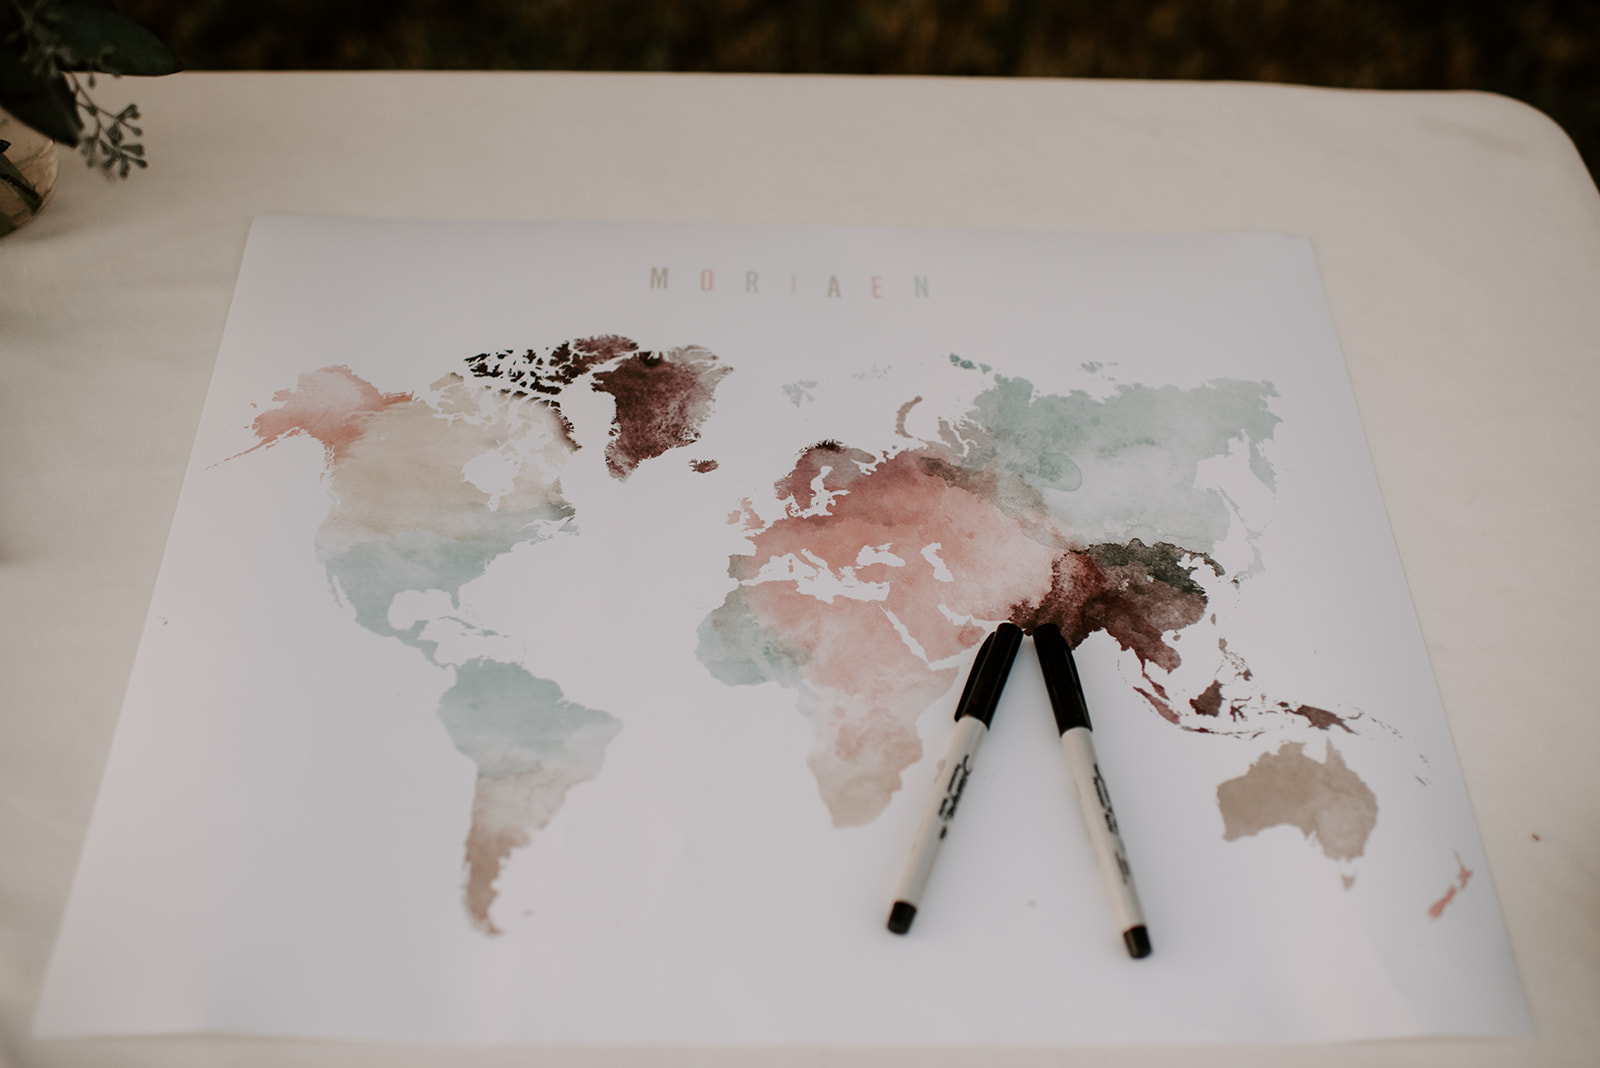 Watercolor world map wedding guest book at Nashville wedding